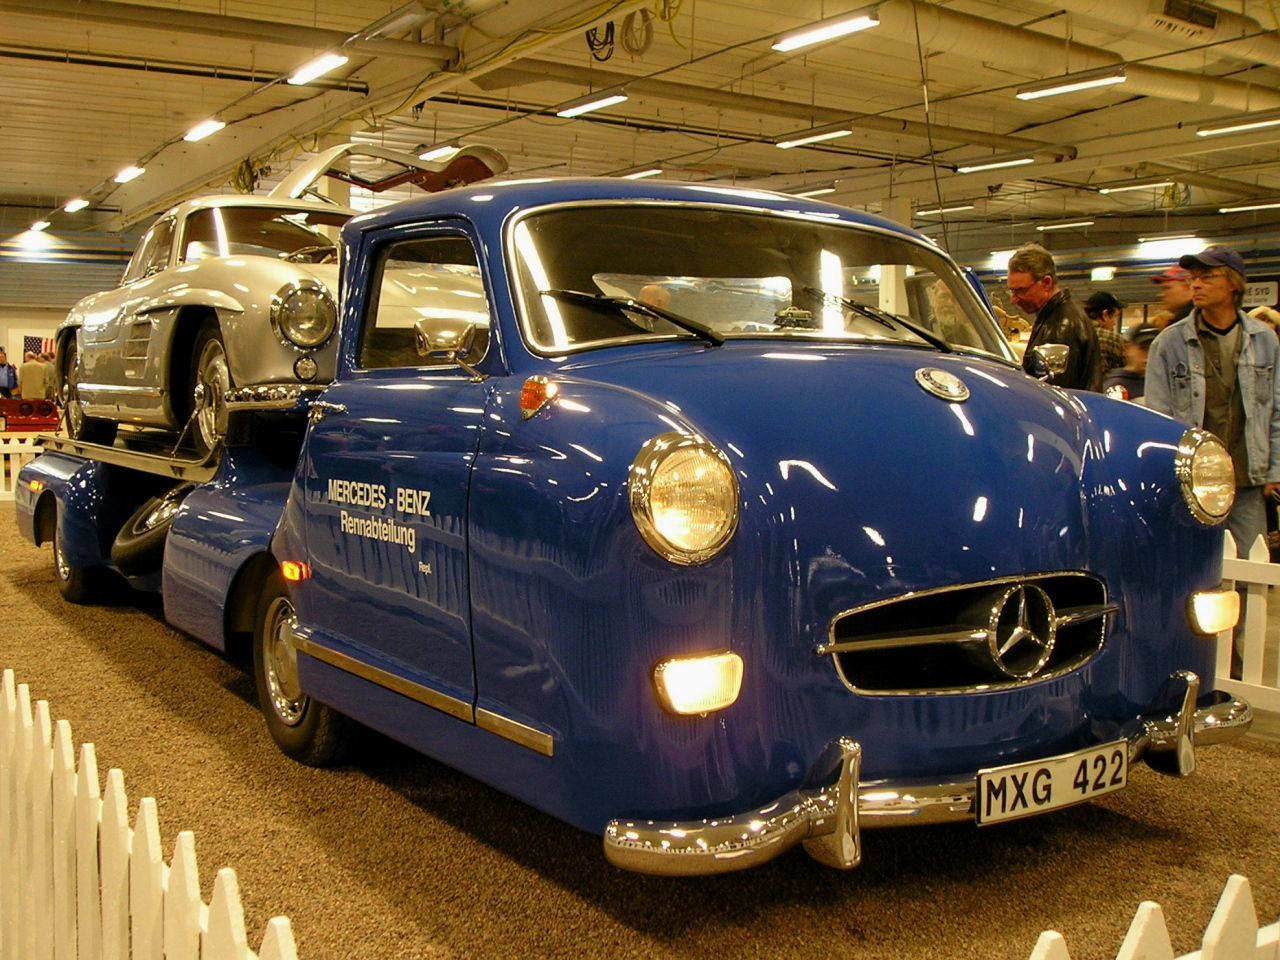 Mercedes-Benz Spezial 300 Transporter replica